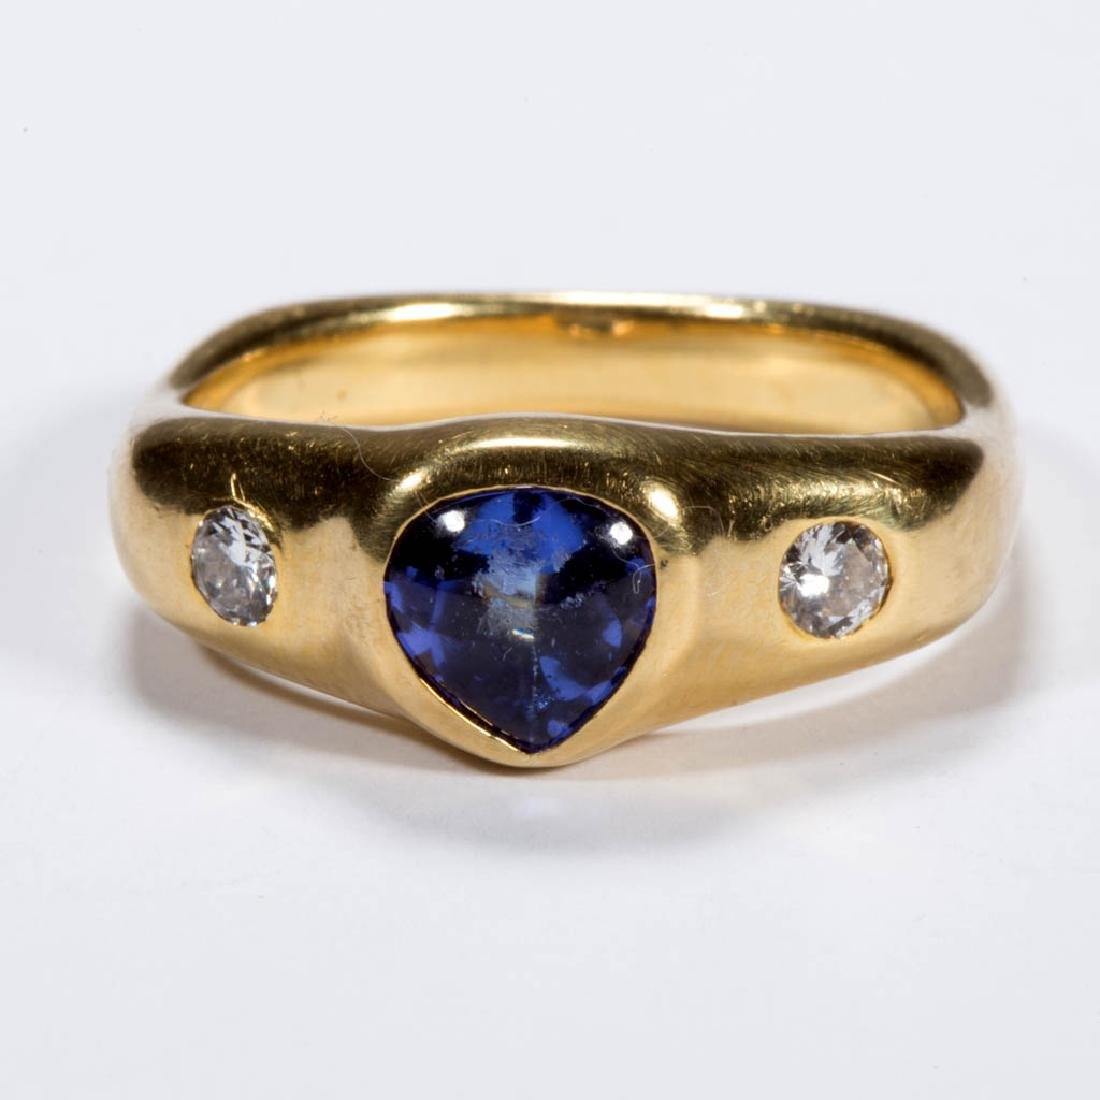 VINTAGE 18K GOLD, TANZANITE, AND DIAMOND LADY'S RING